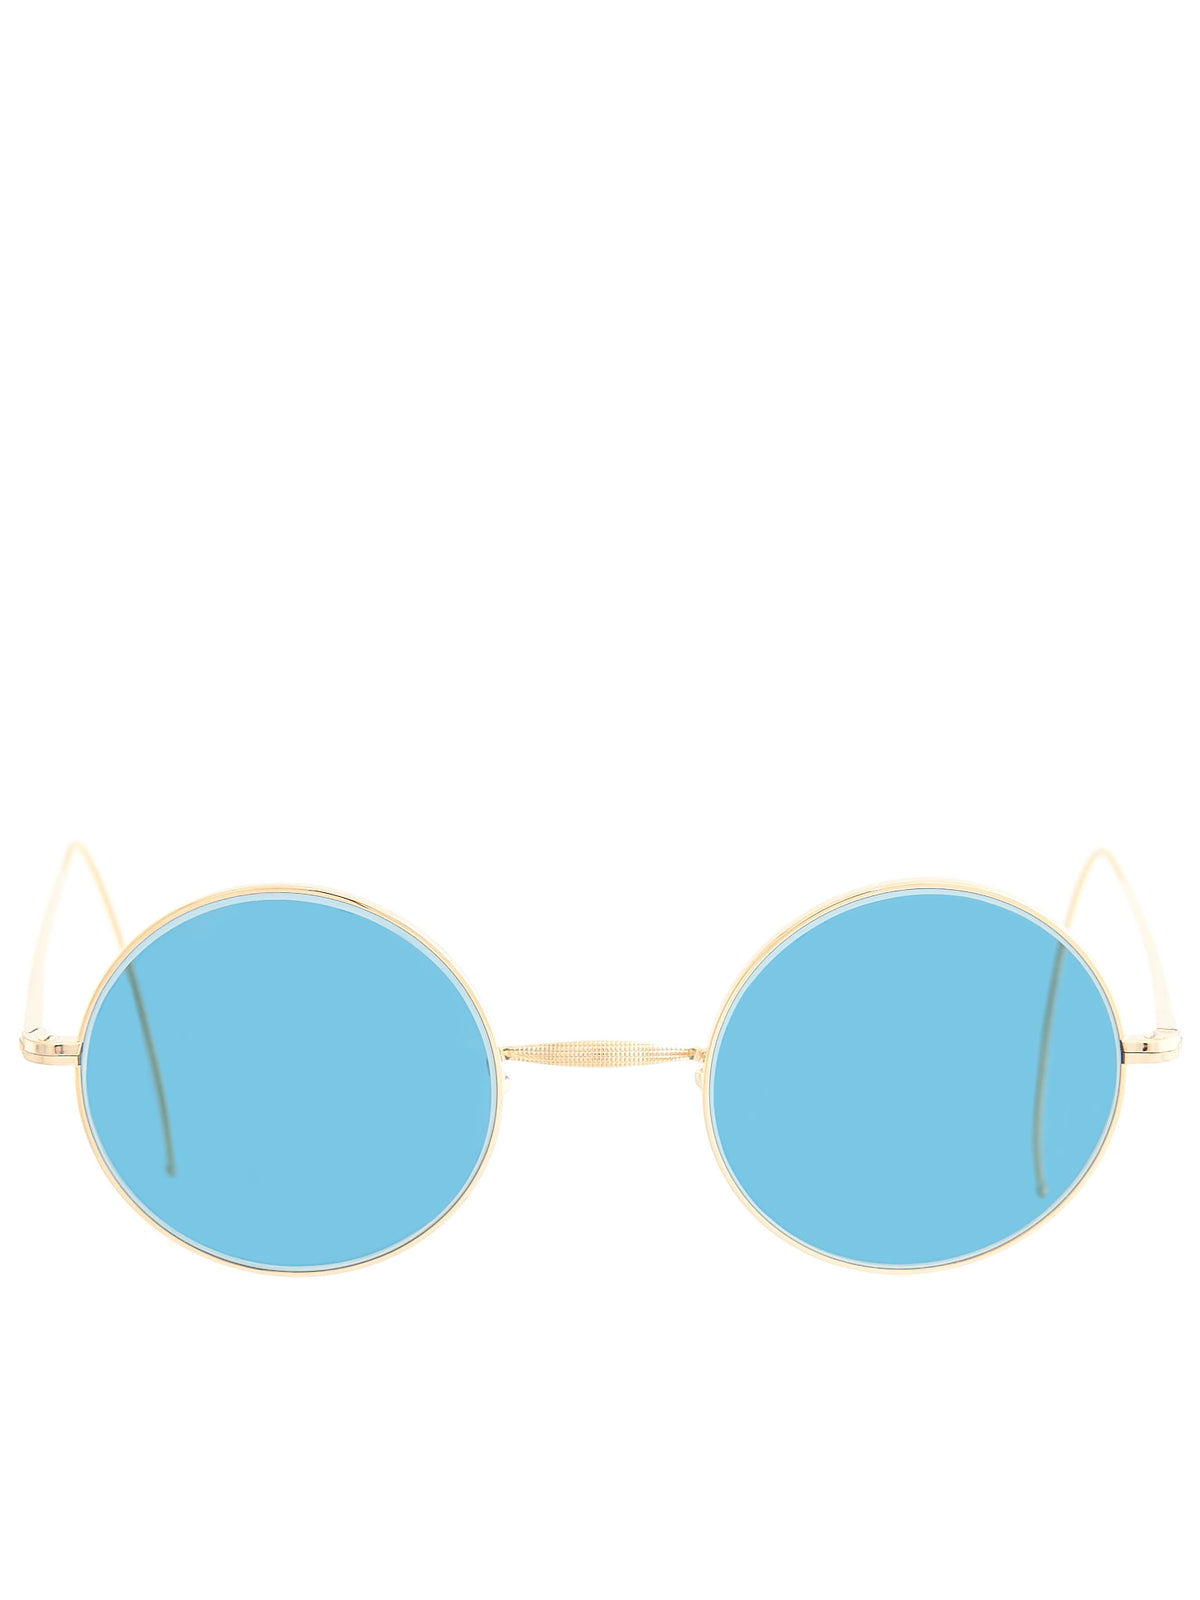 Round Cable Sunglasses (SPM-CLASSIC-RND-GP-CABLE-BLUEG)